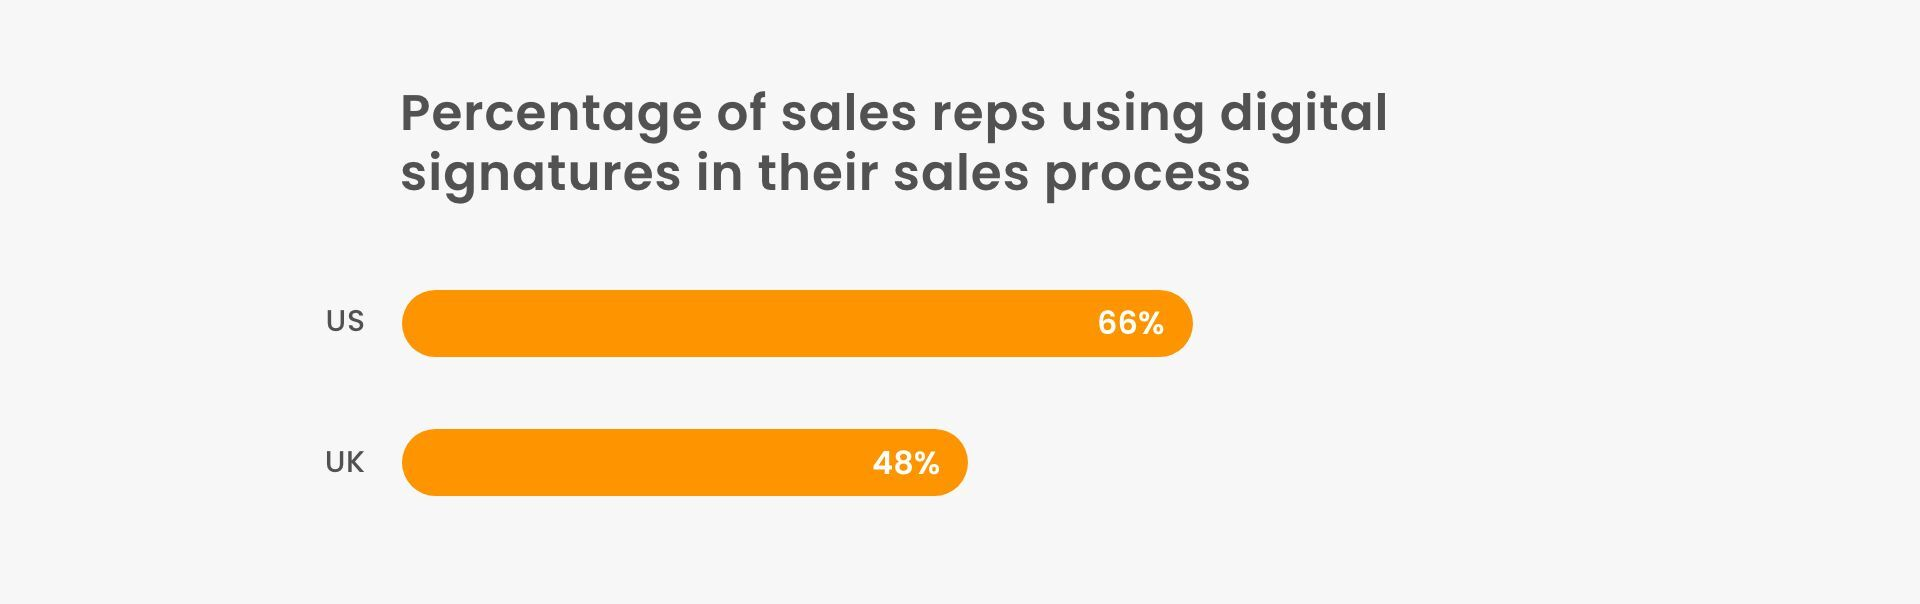 How many sales reps use digital signatures in their sales process